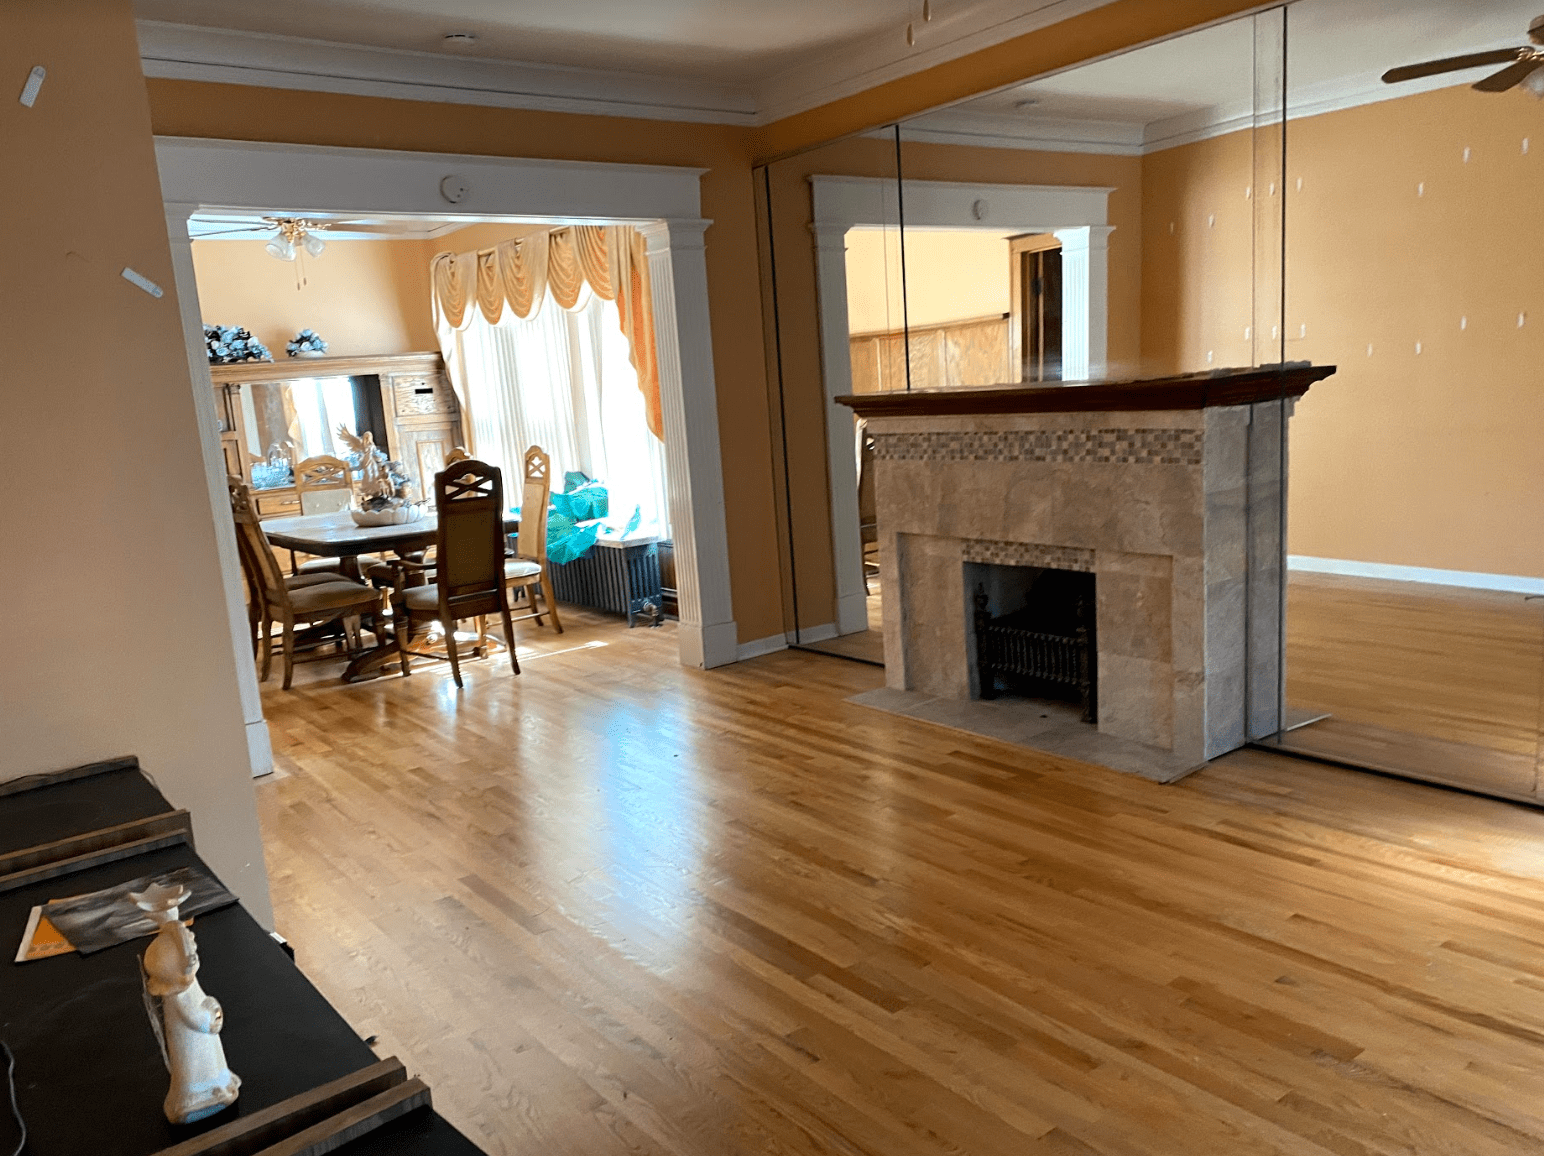 Off Market Single Family in Chatham | Property Plug